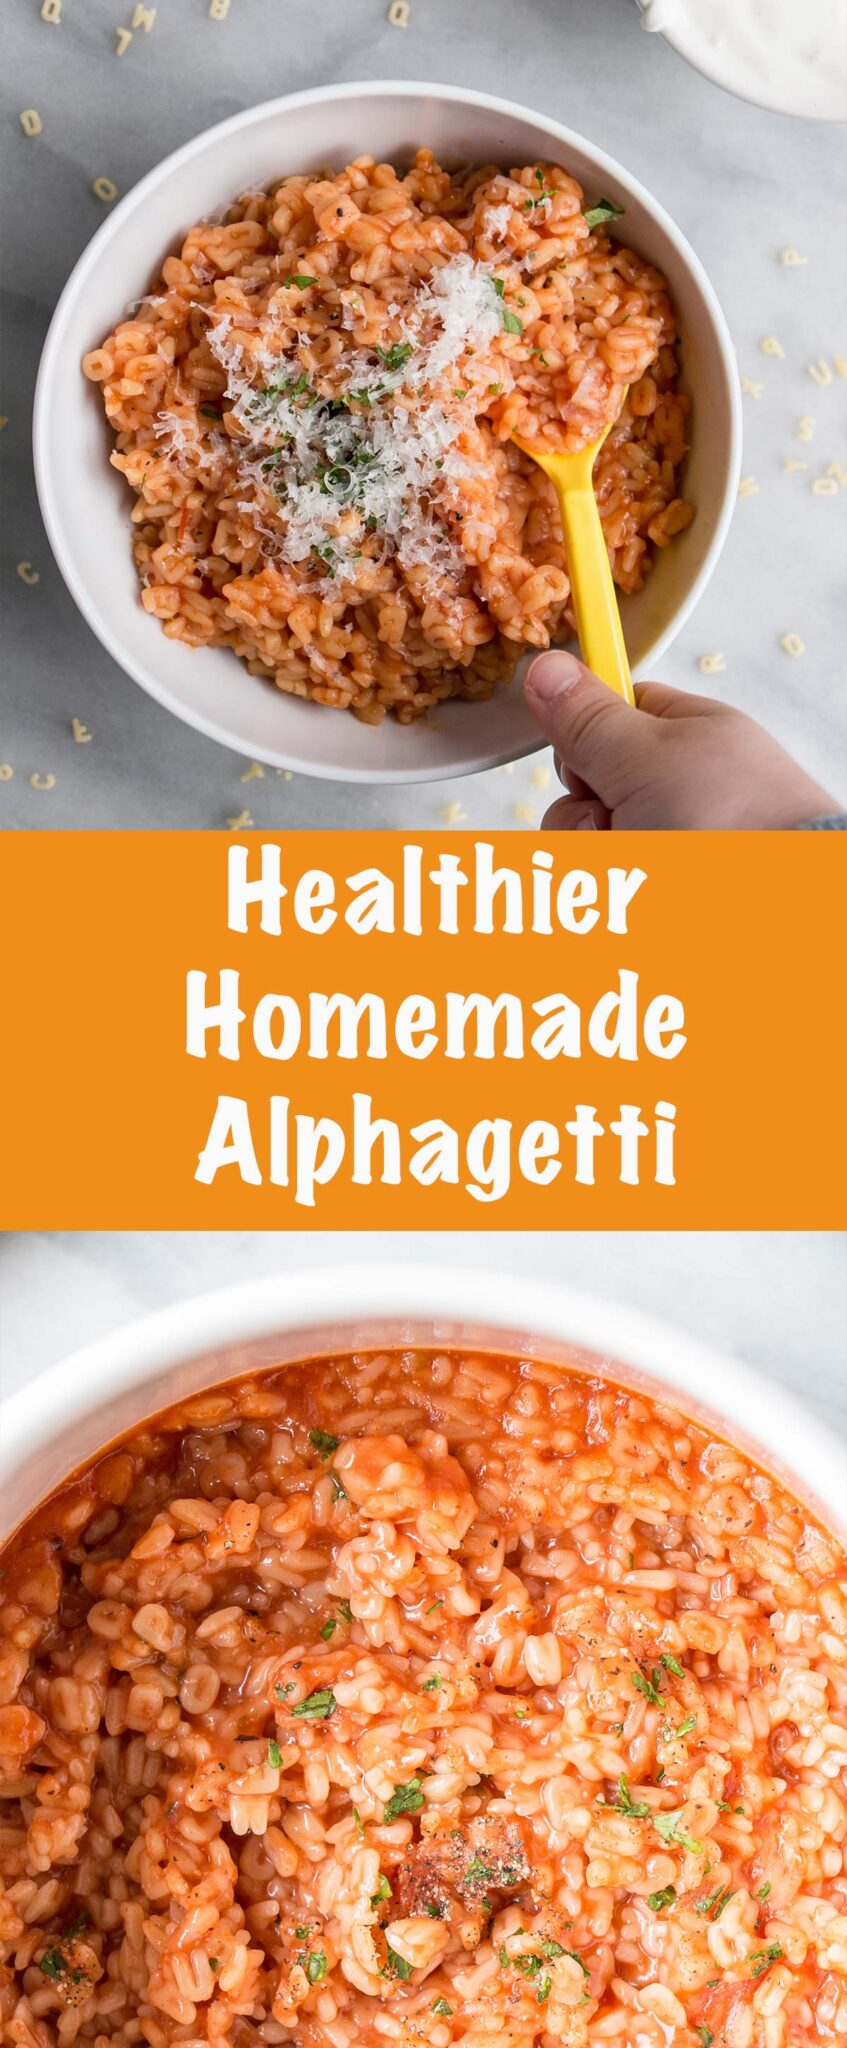 Healthier Homemade Alphagetti is a quick and easy dish with all the flavours of a childhood favourite flavours. #comfortfood #childhood #kidfriendly